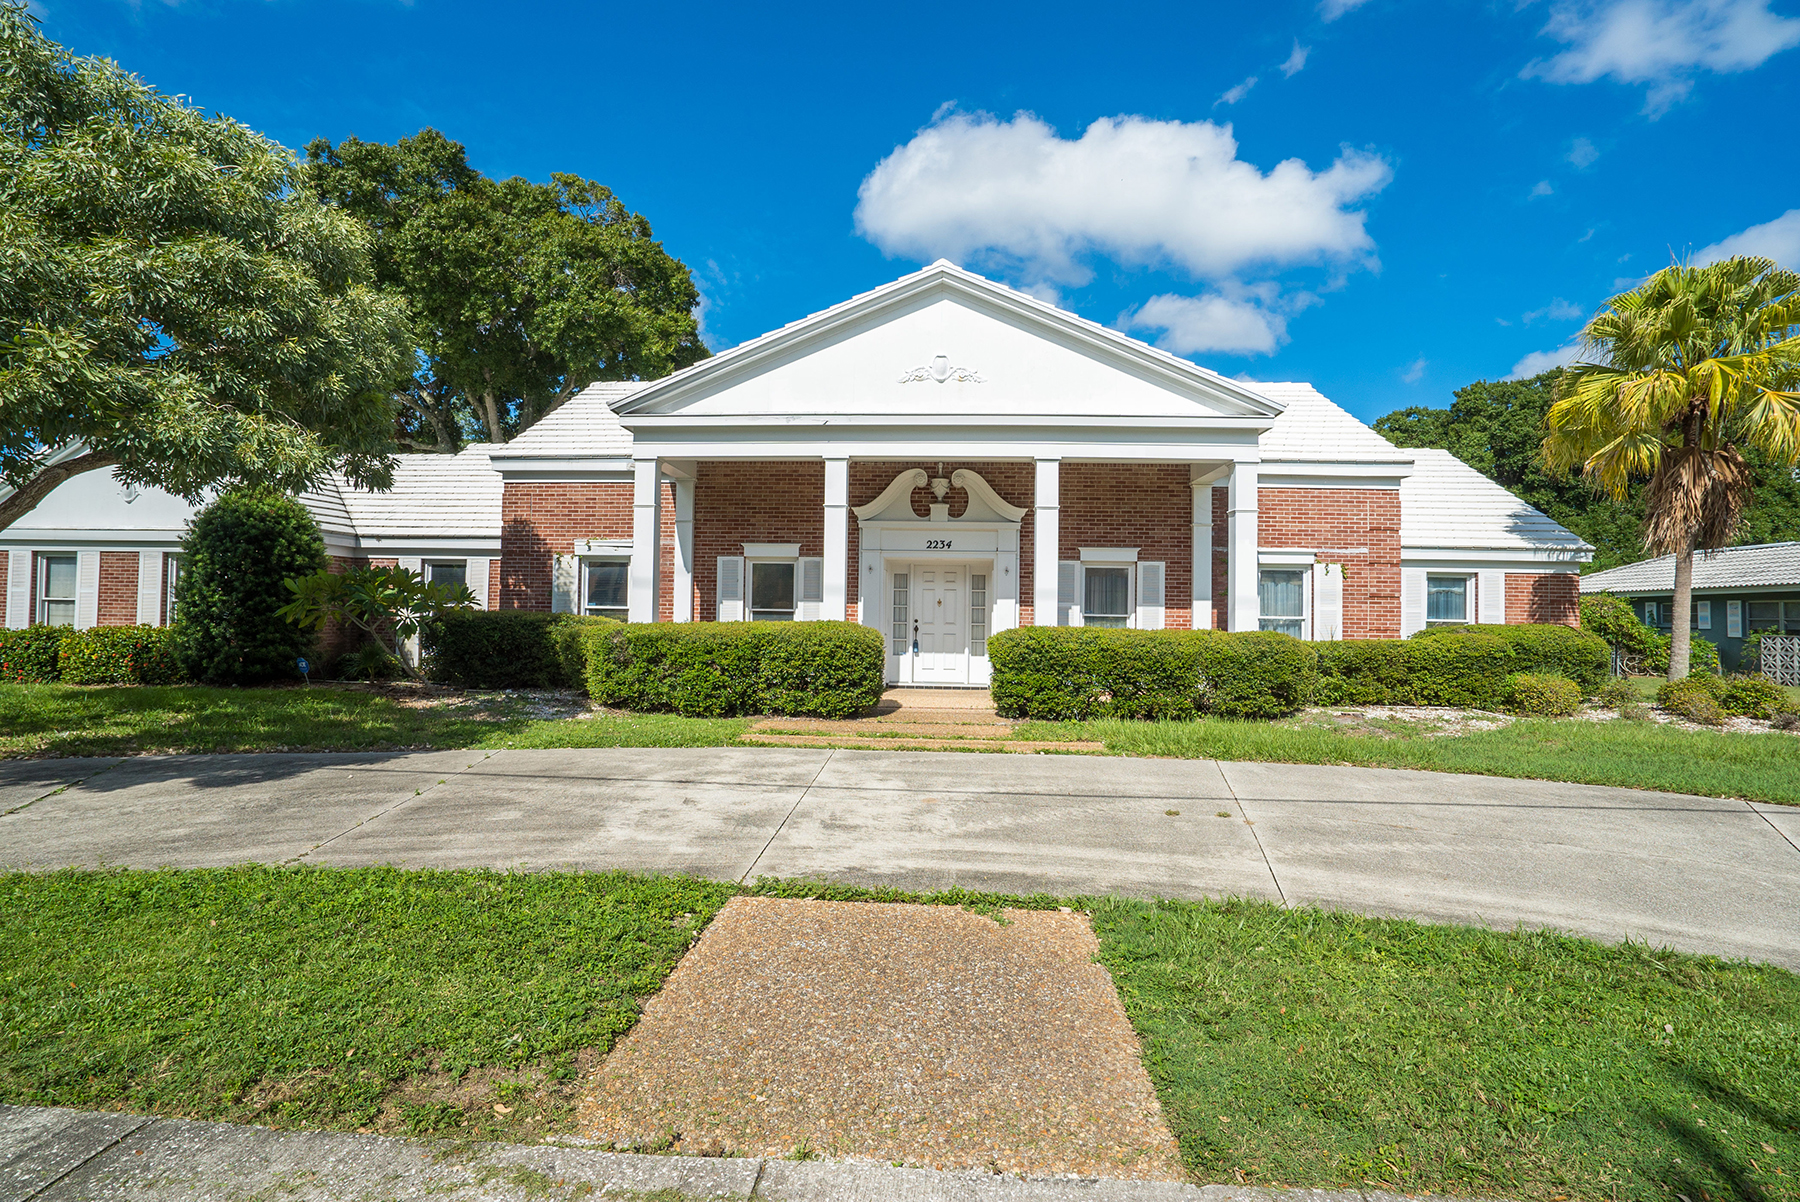 Single Family Home for Sale at 2234 Beneva Rd , Sarasota, FL 34232 2234 Beneva Rd Sarasota, Florida, 34232 United States